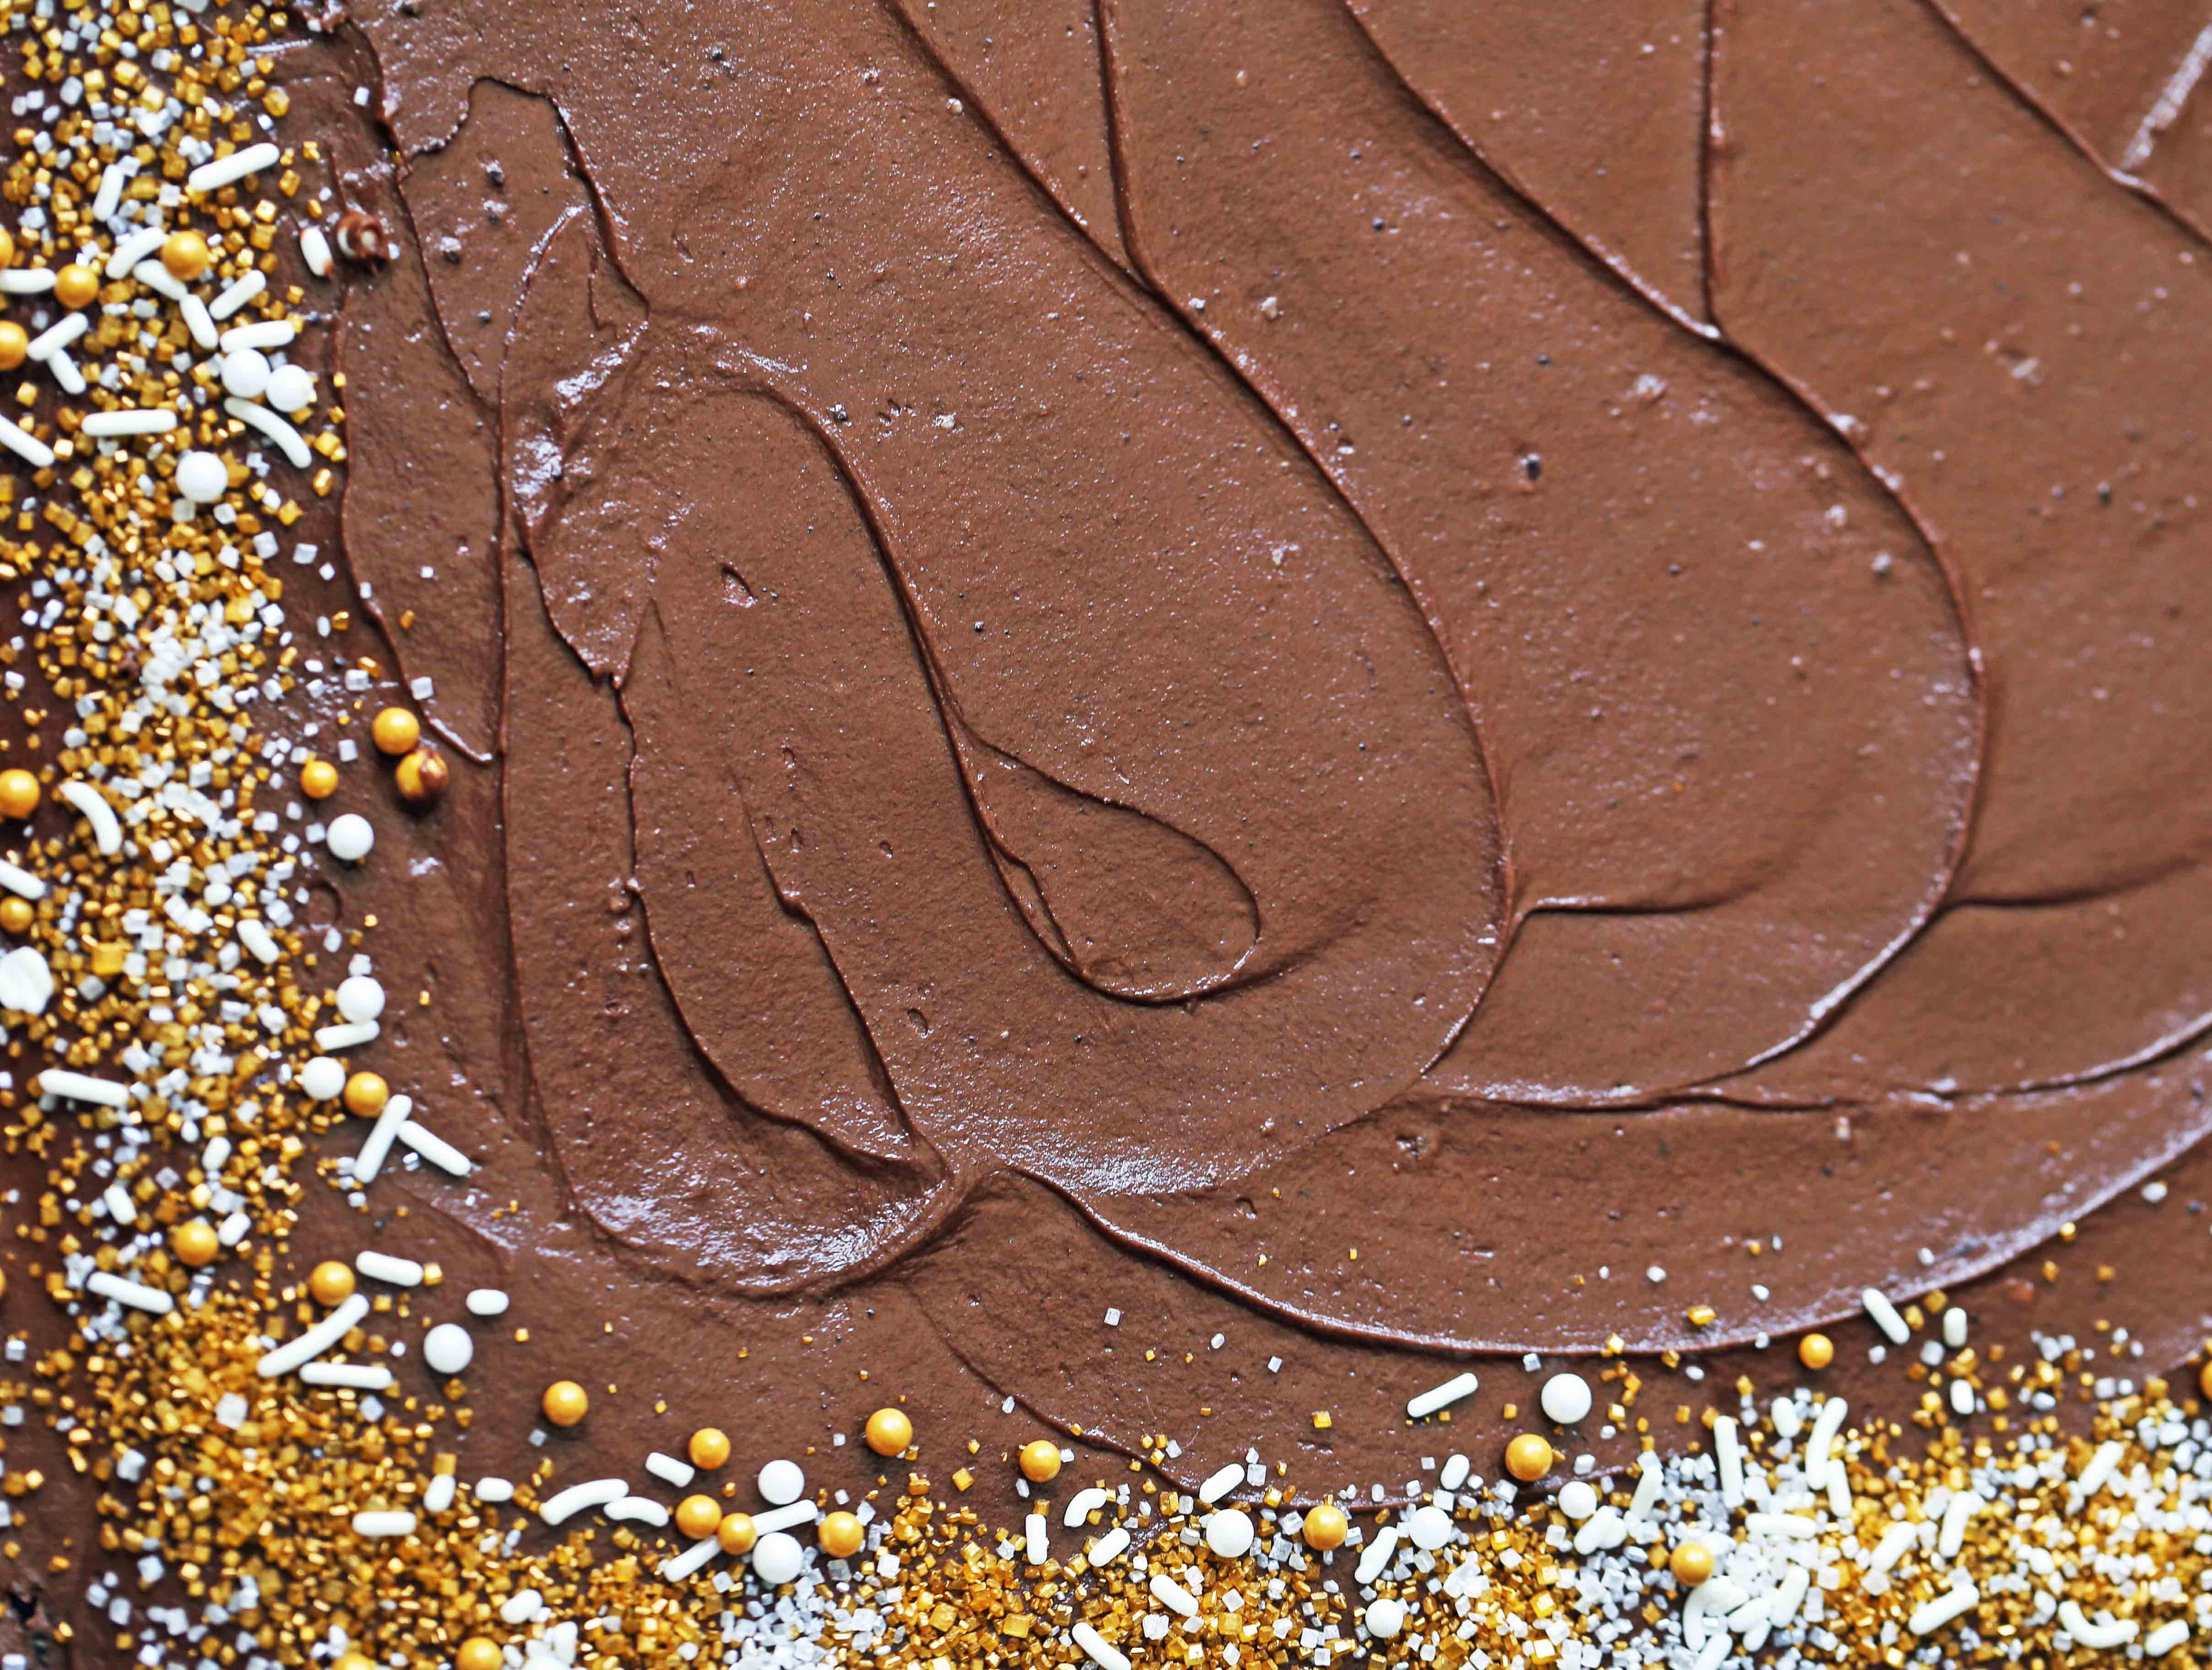 The Best Chocolate SHEET Cake with Milk Chocolate Frosting. Quick and easy homemade chocolate sheet cake recipe. www.modernhoney.com #chocolatesheetcake #sheetcake #chocolatesheetcakerecipe